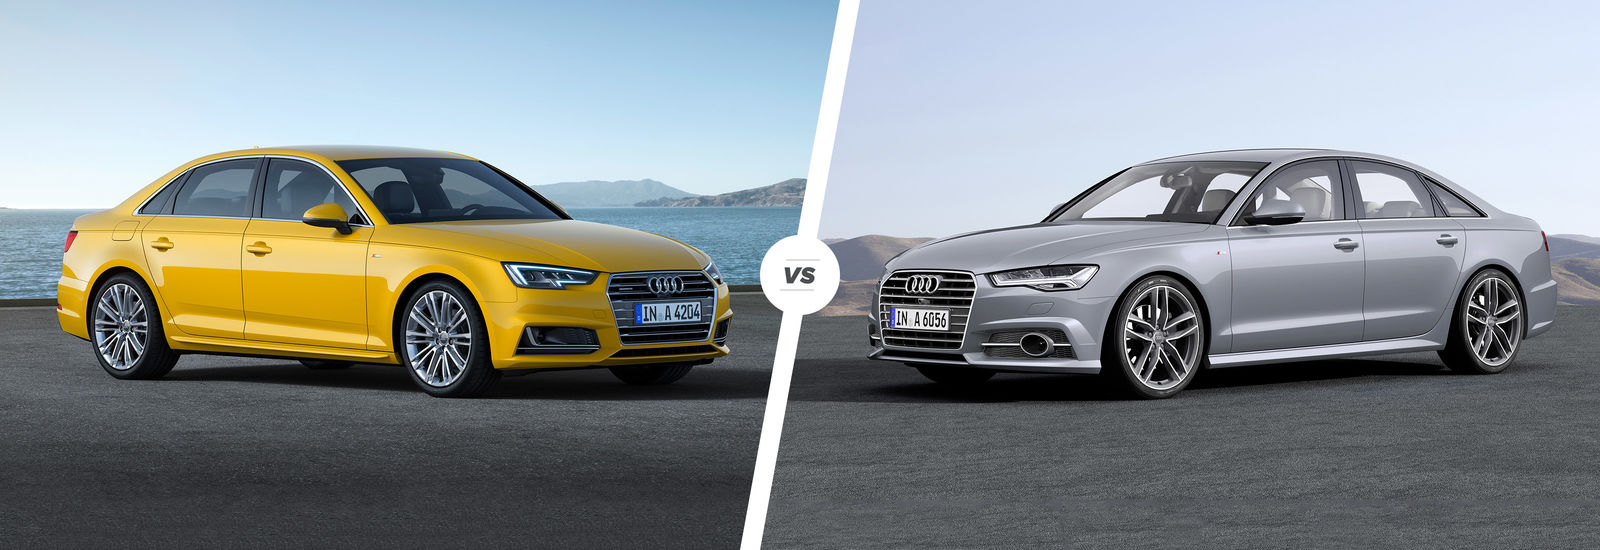 Audi A4 Vs A6 Side By Side Comparison Carwow